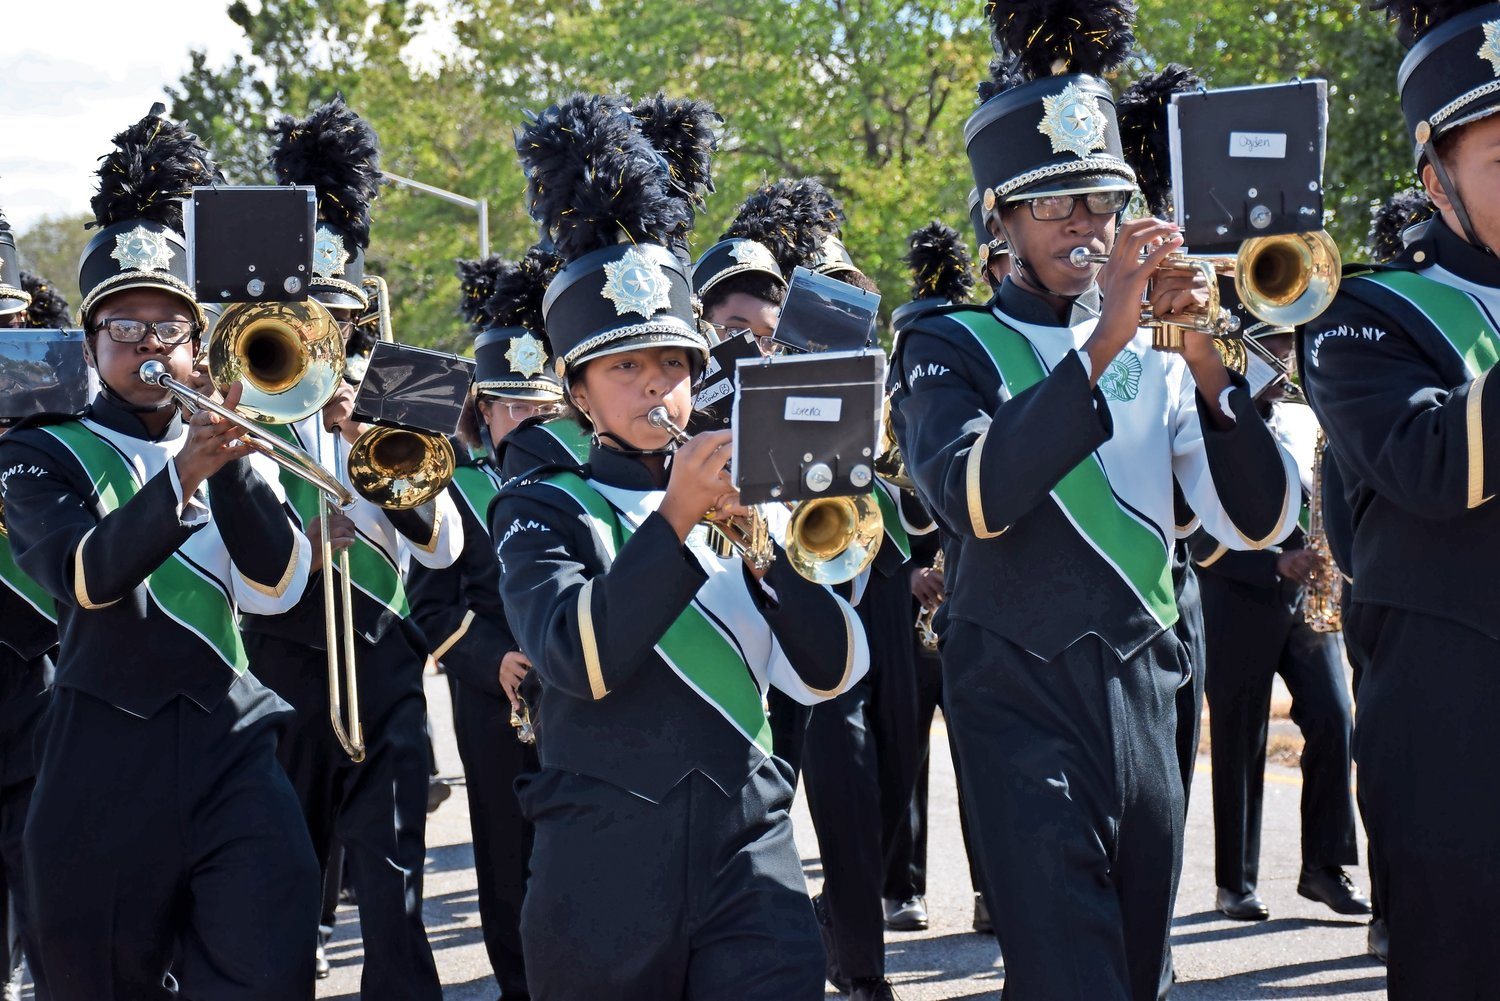 The marching band performed prior to Elmont Memorial High School's Homecoming game on Oct. 12.